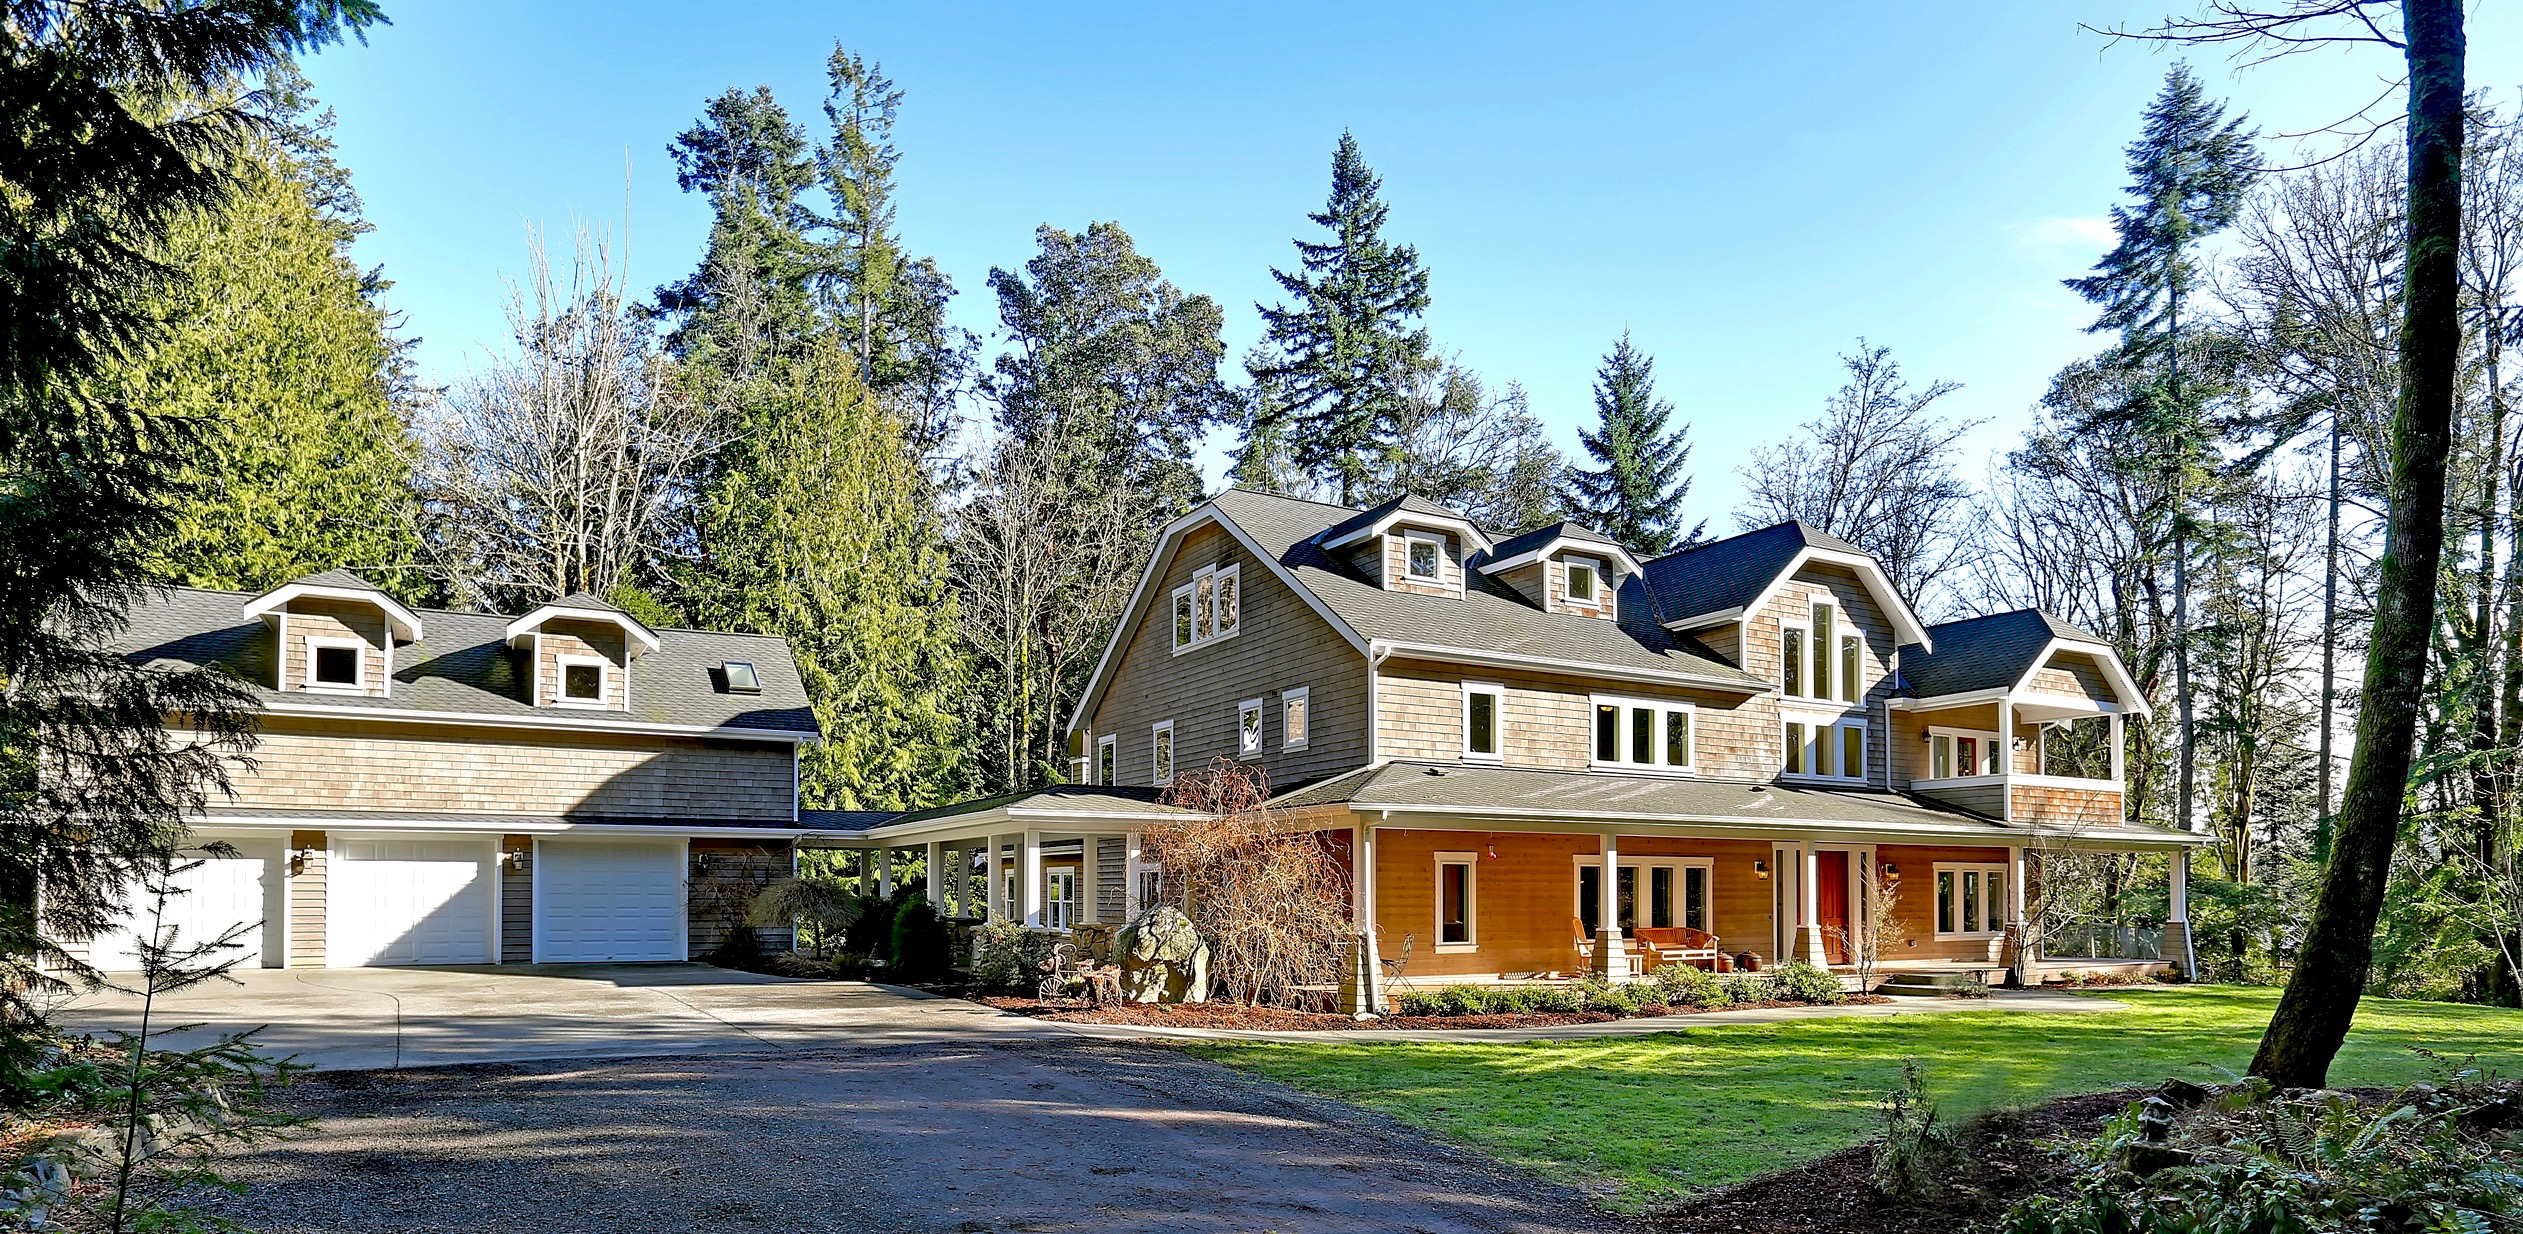 Maison unifamiliale pour l Vente à Port Blakely Estate 11011 NE Boulder Place Bainbridge Island, Washington, 98110 États-Unis